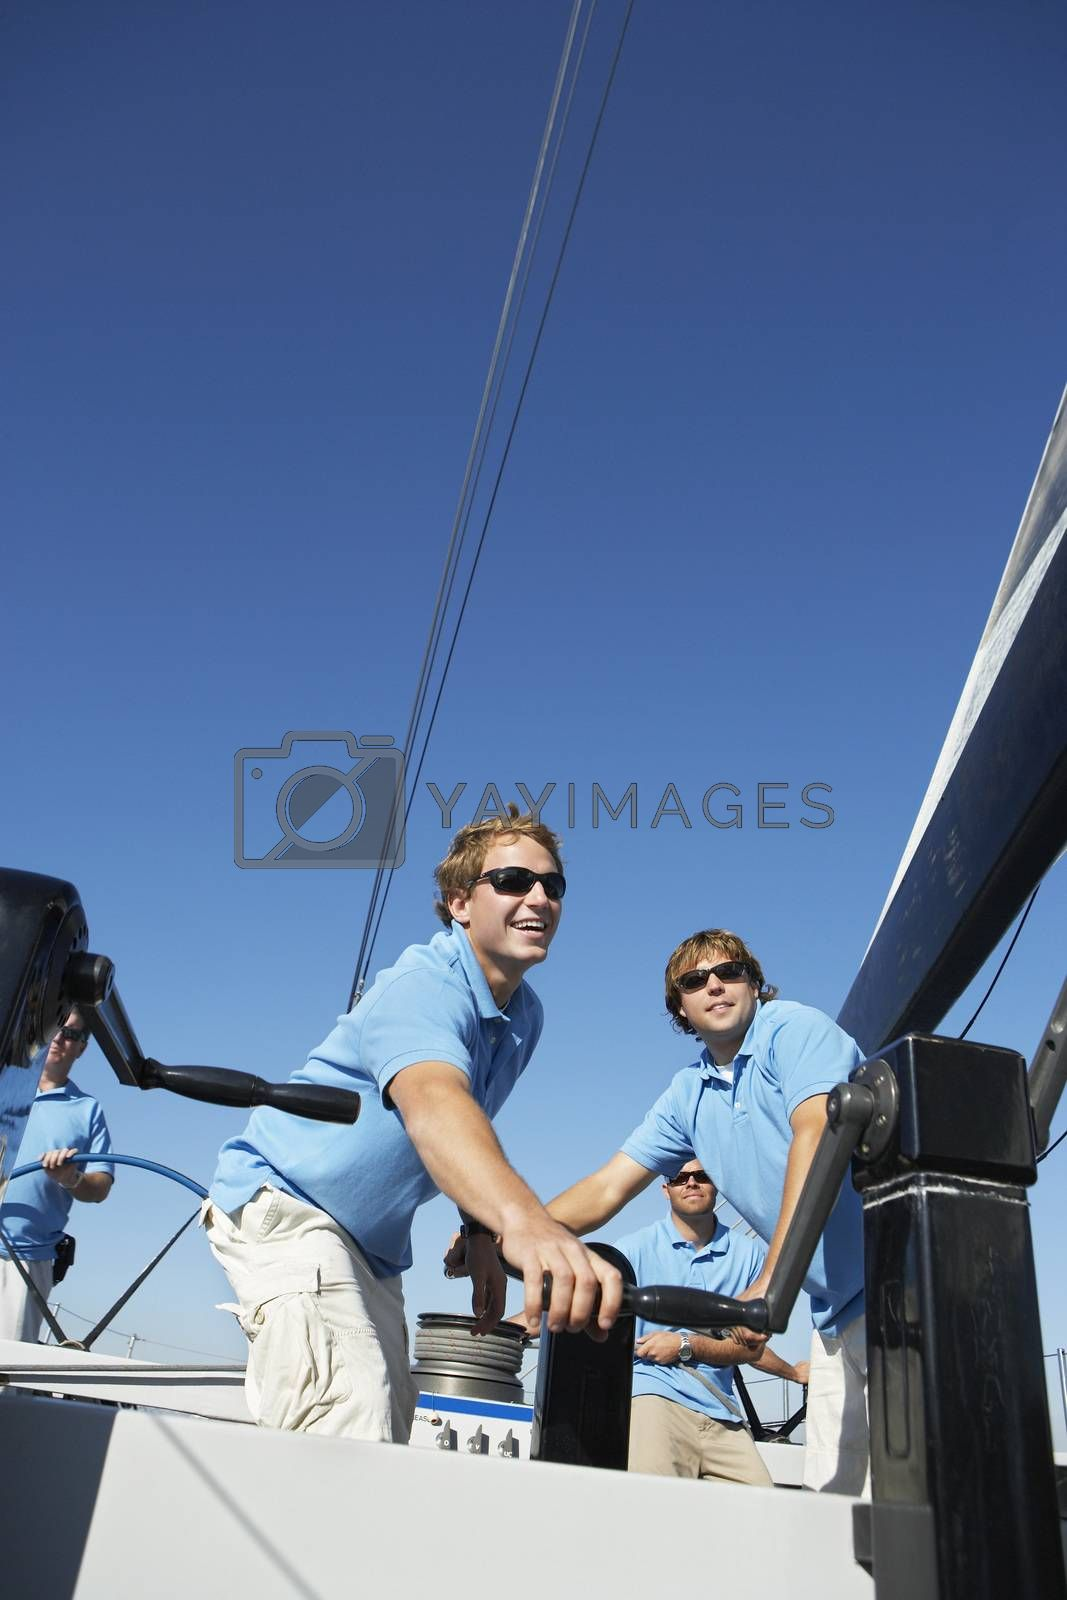 Photo of Sailing team on yacht